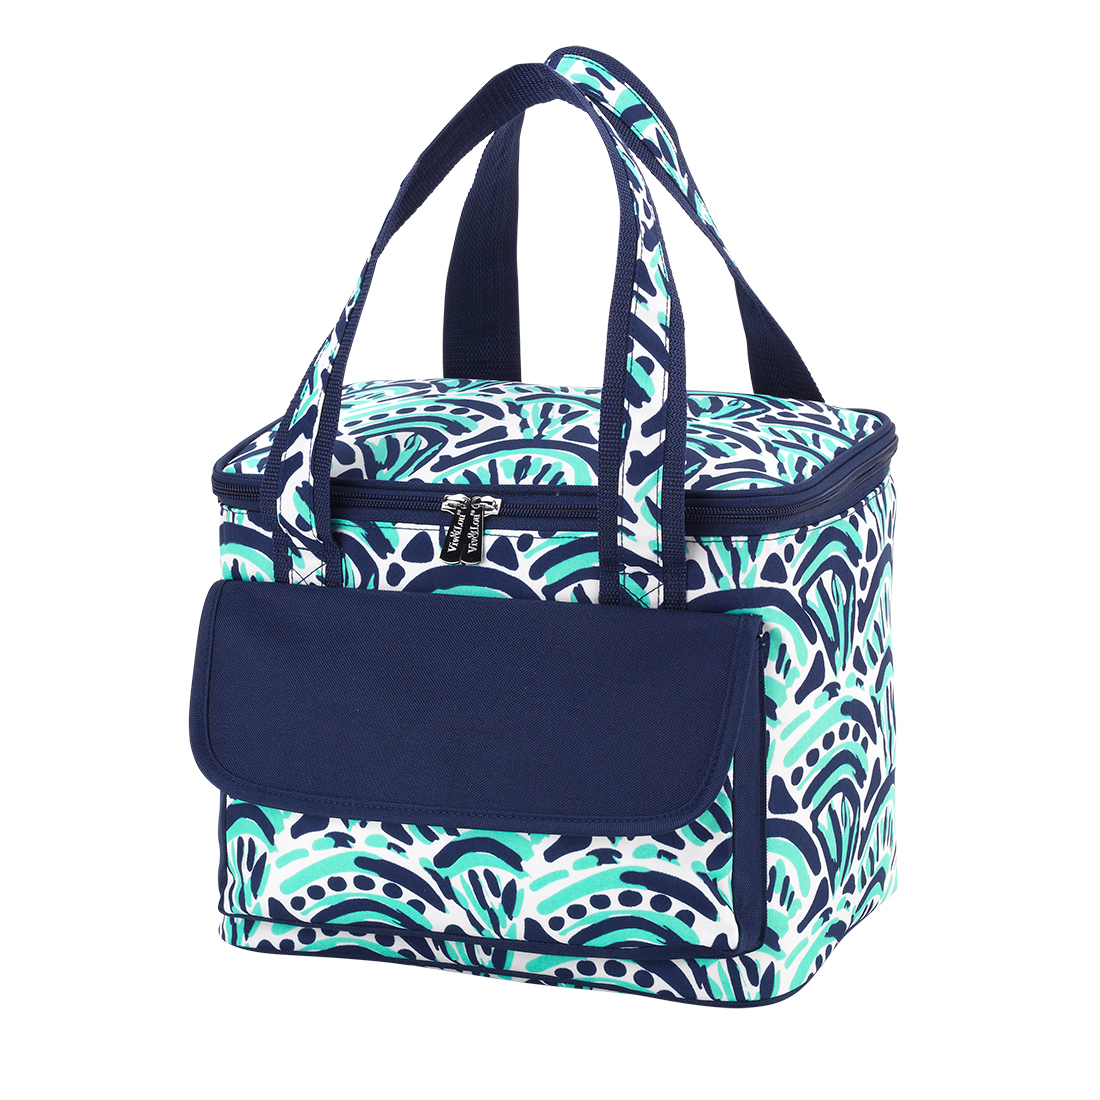 Home Bags Monogrammed Cooler Bag Make Waves